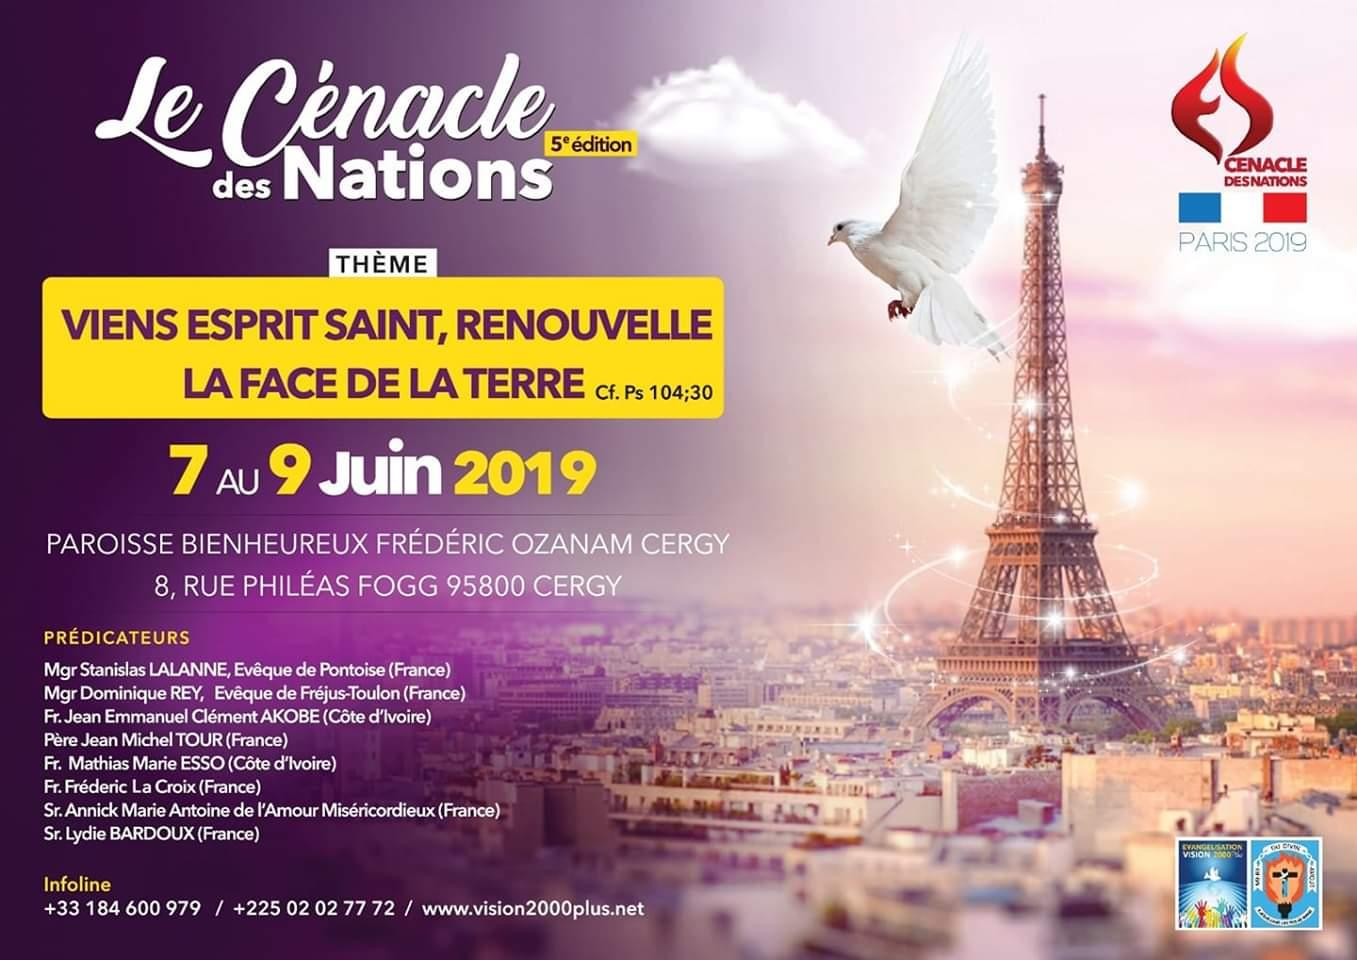 Cenacle des nations 2019